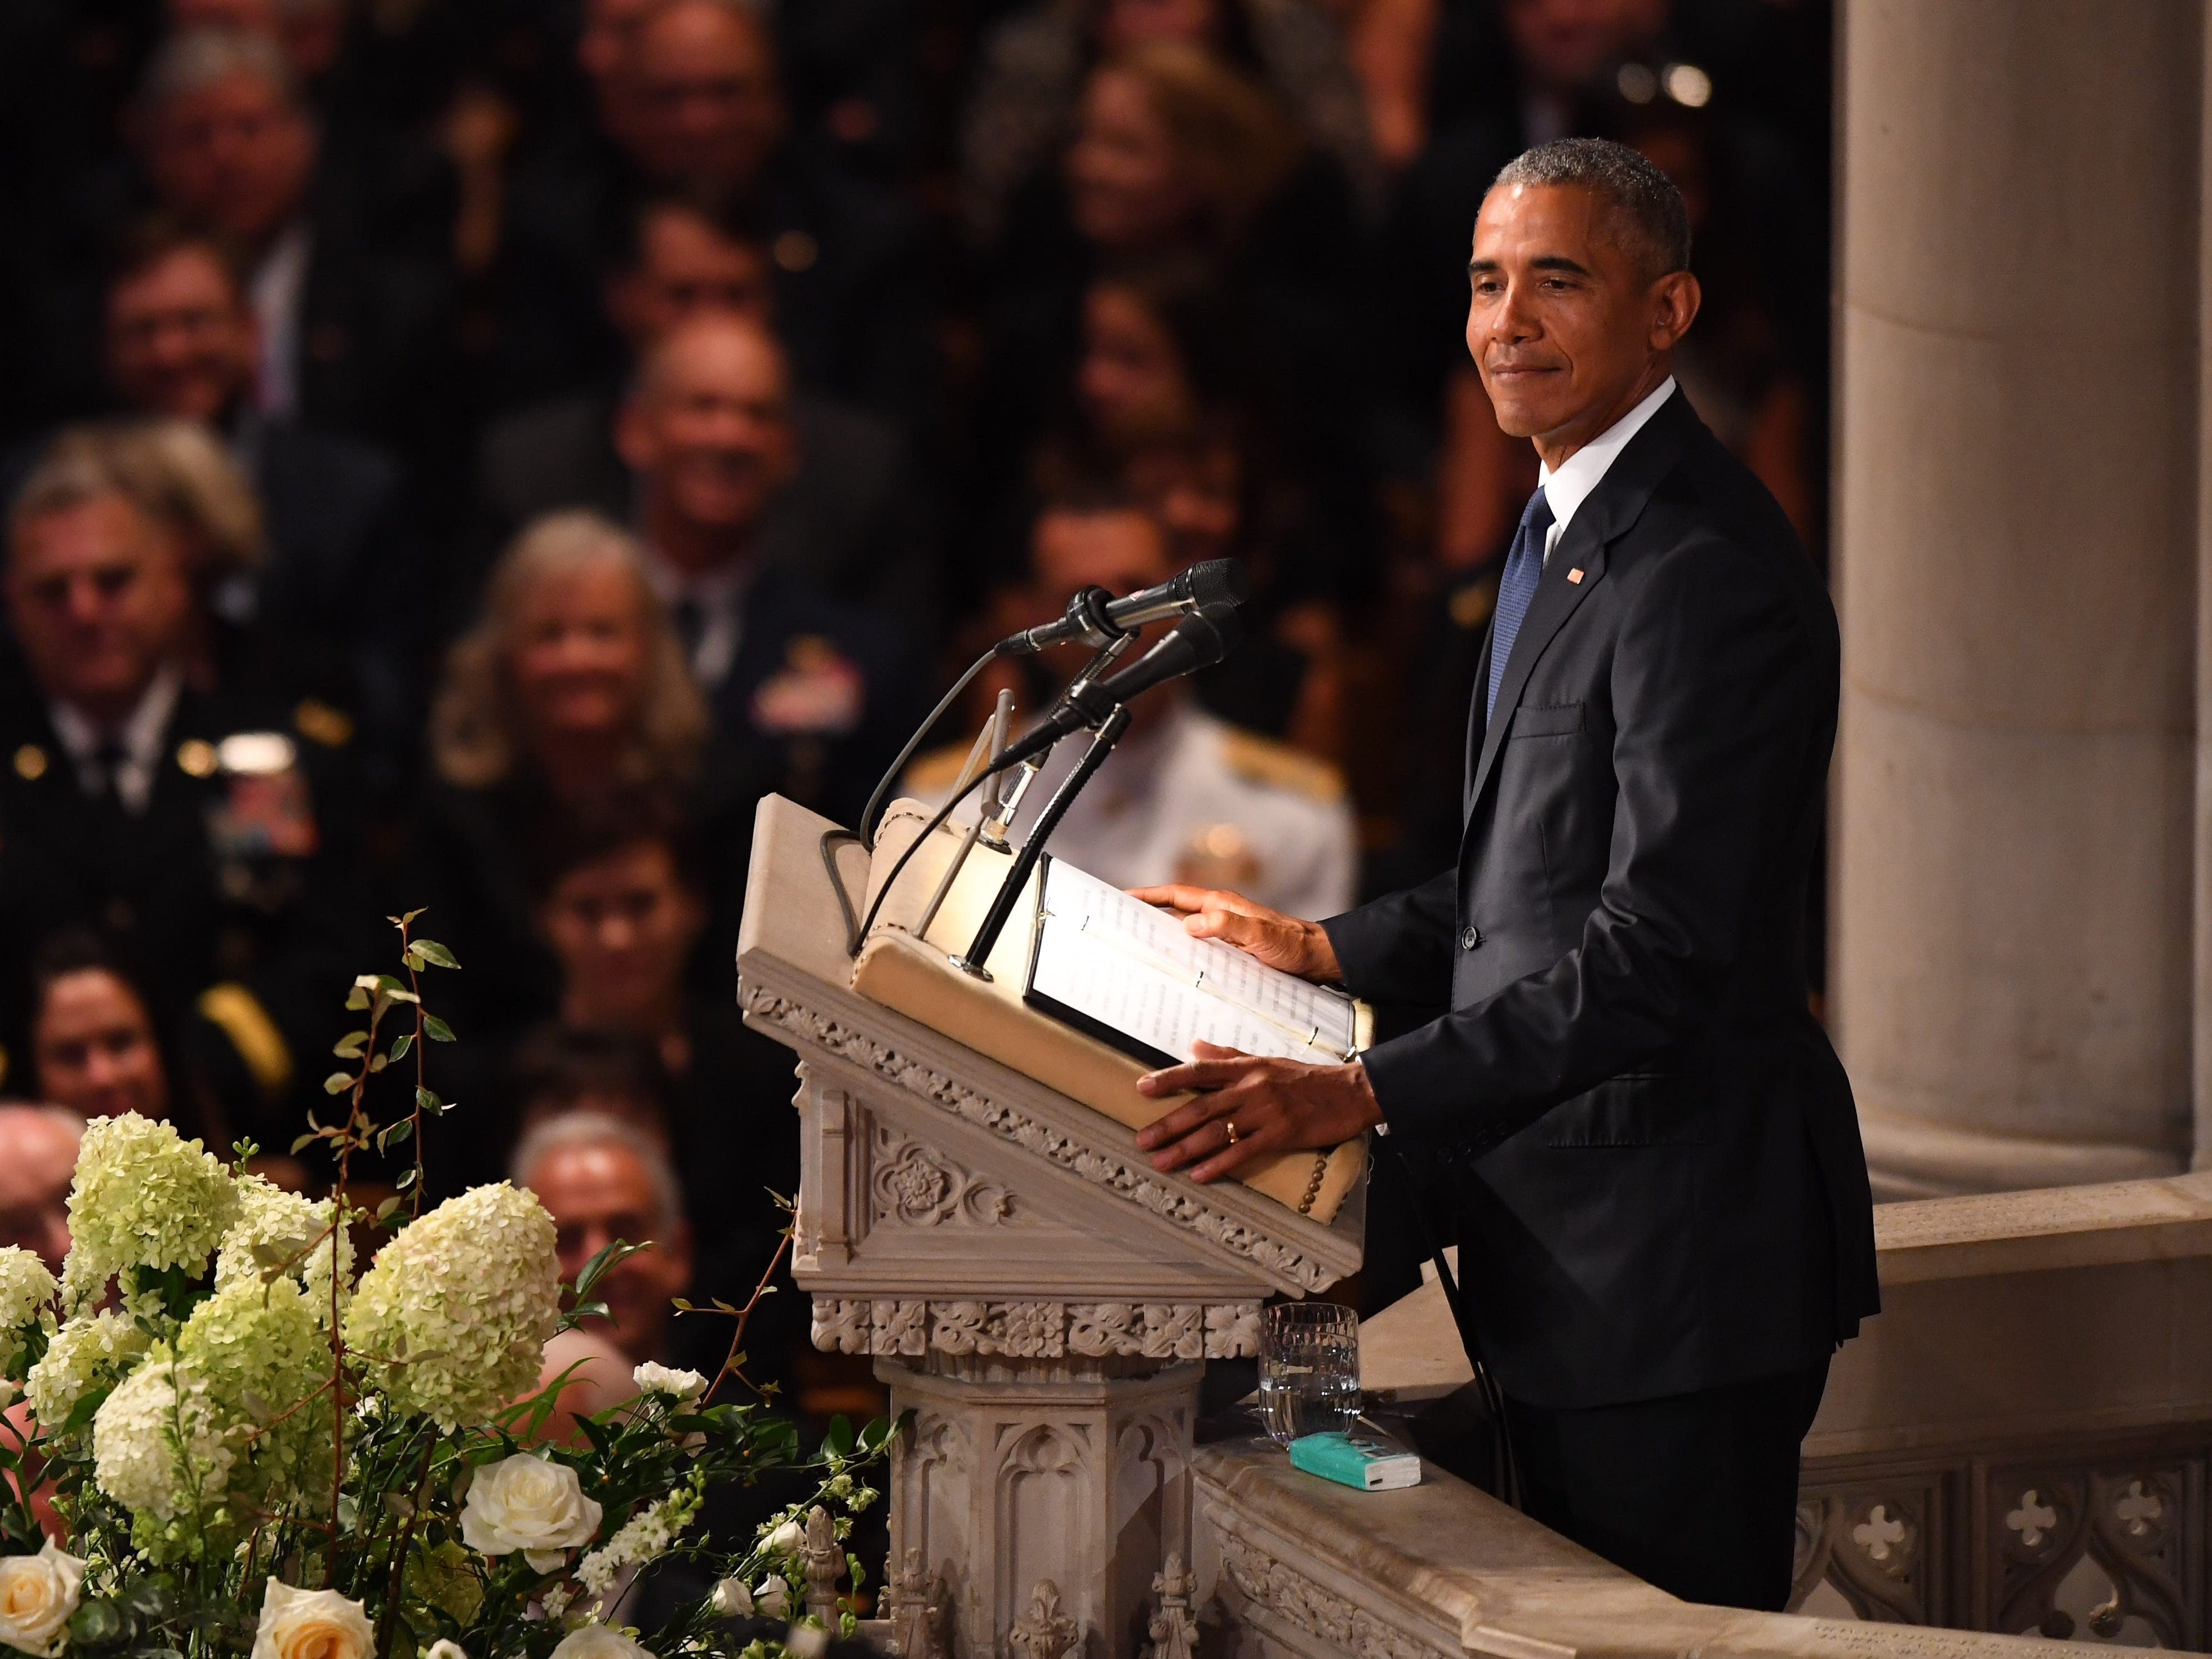 Former President Barack Obama speaks at the memorial service for John McCain at Sept. 1, 2018, at the National Cathedral.  Sen. McCain died on Aug. 25.